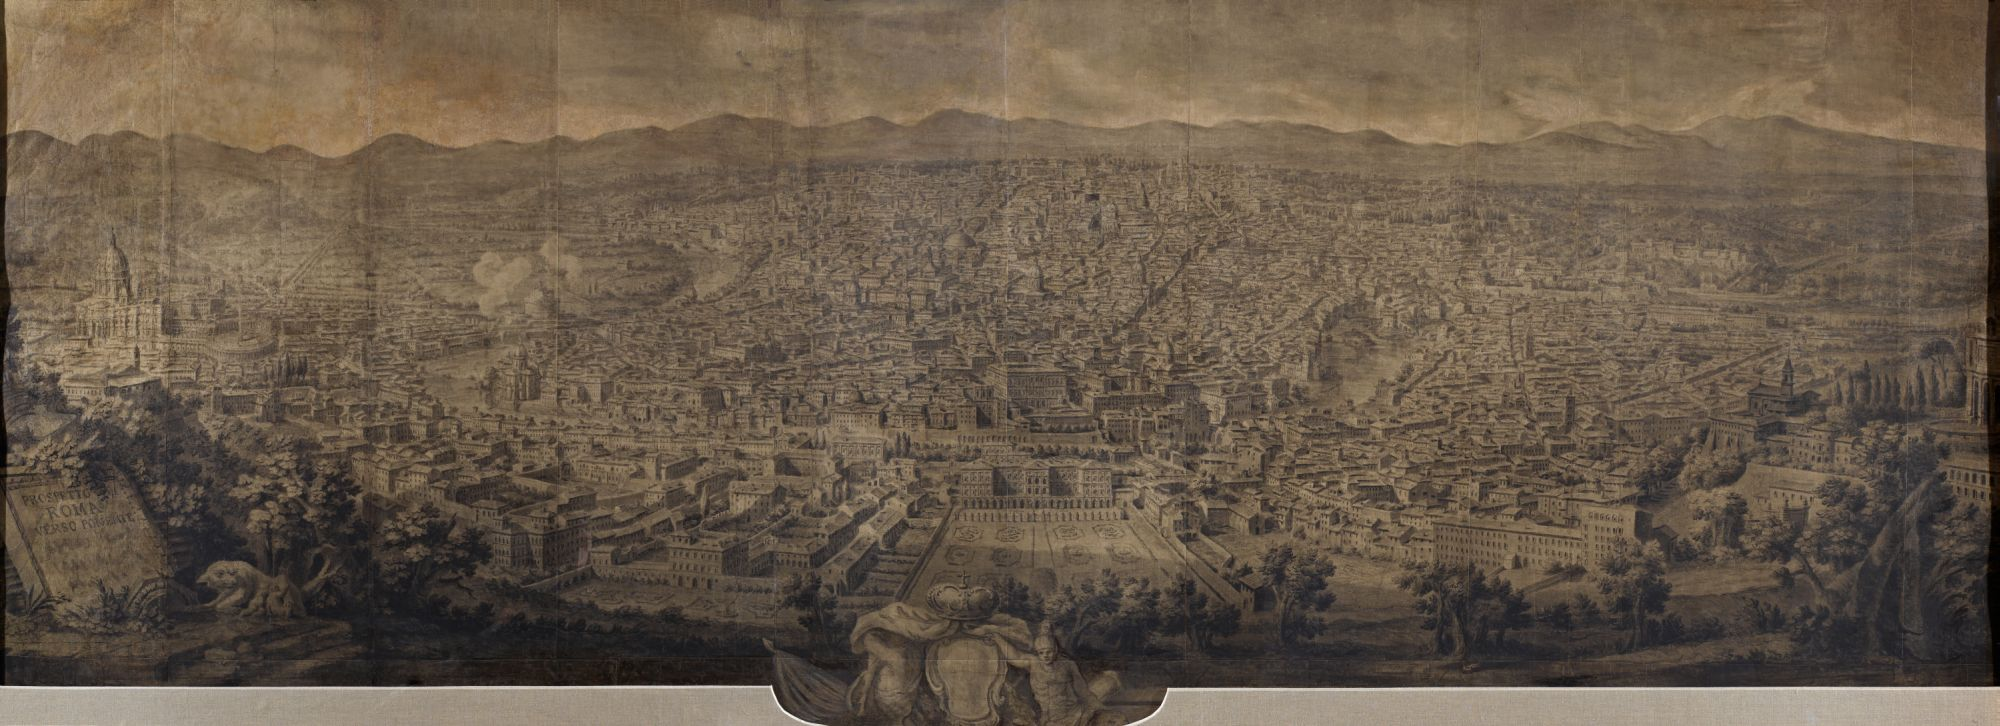 "Preparatory drawing for the engraving ""Prospetto dell'alma città di Roma visto dal Monte Gianicolo"", which was first published by Giuseppe Vasi in 1765"